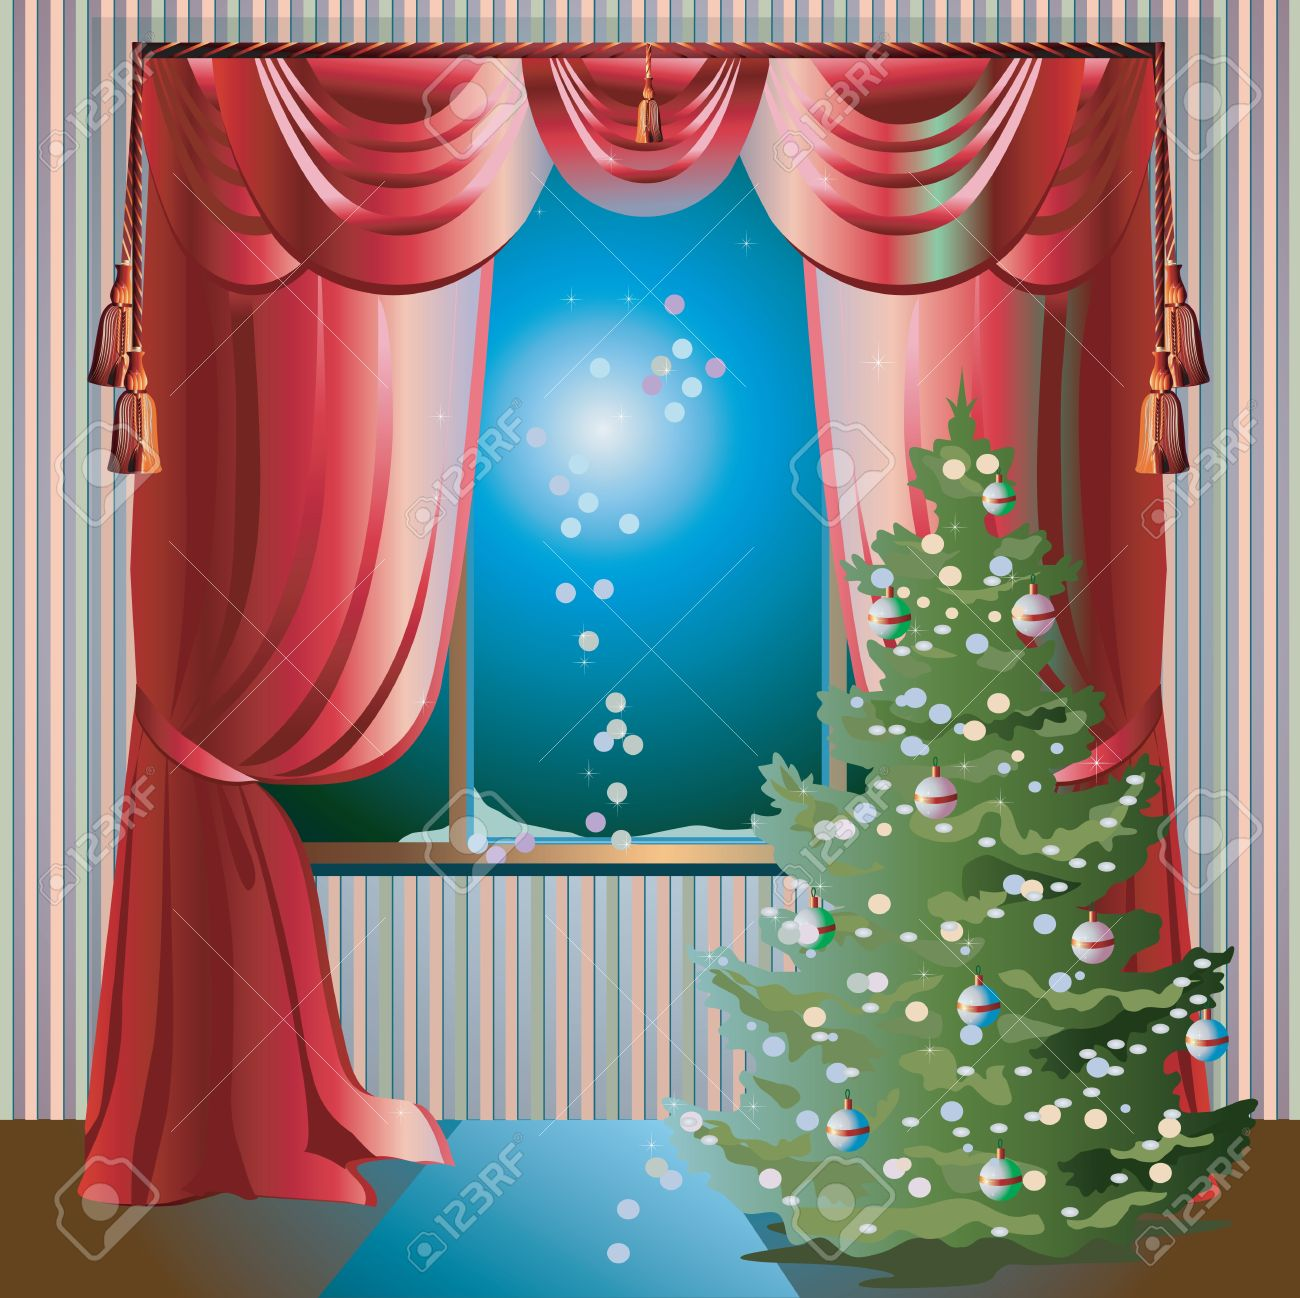 Colorful Illustration With Christmas Tree In The Room Near Window ... for Window With Curtains Illustration  55nar